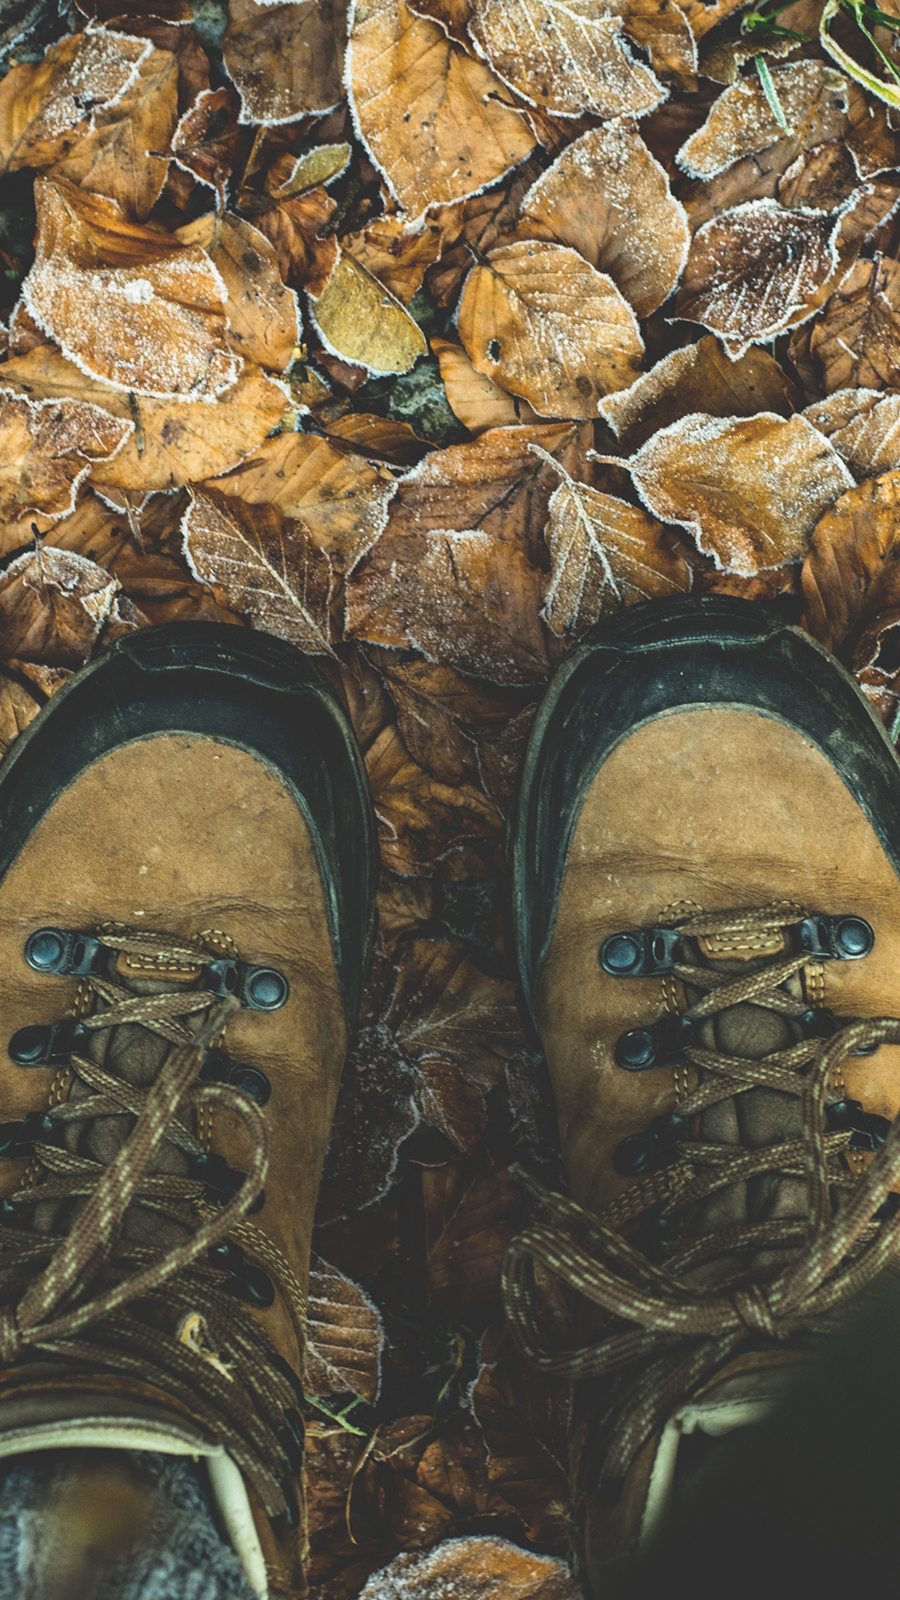 Shoes Autumn Legs Foliage Wallpapers Free Download